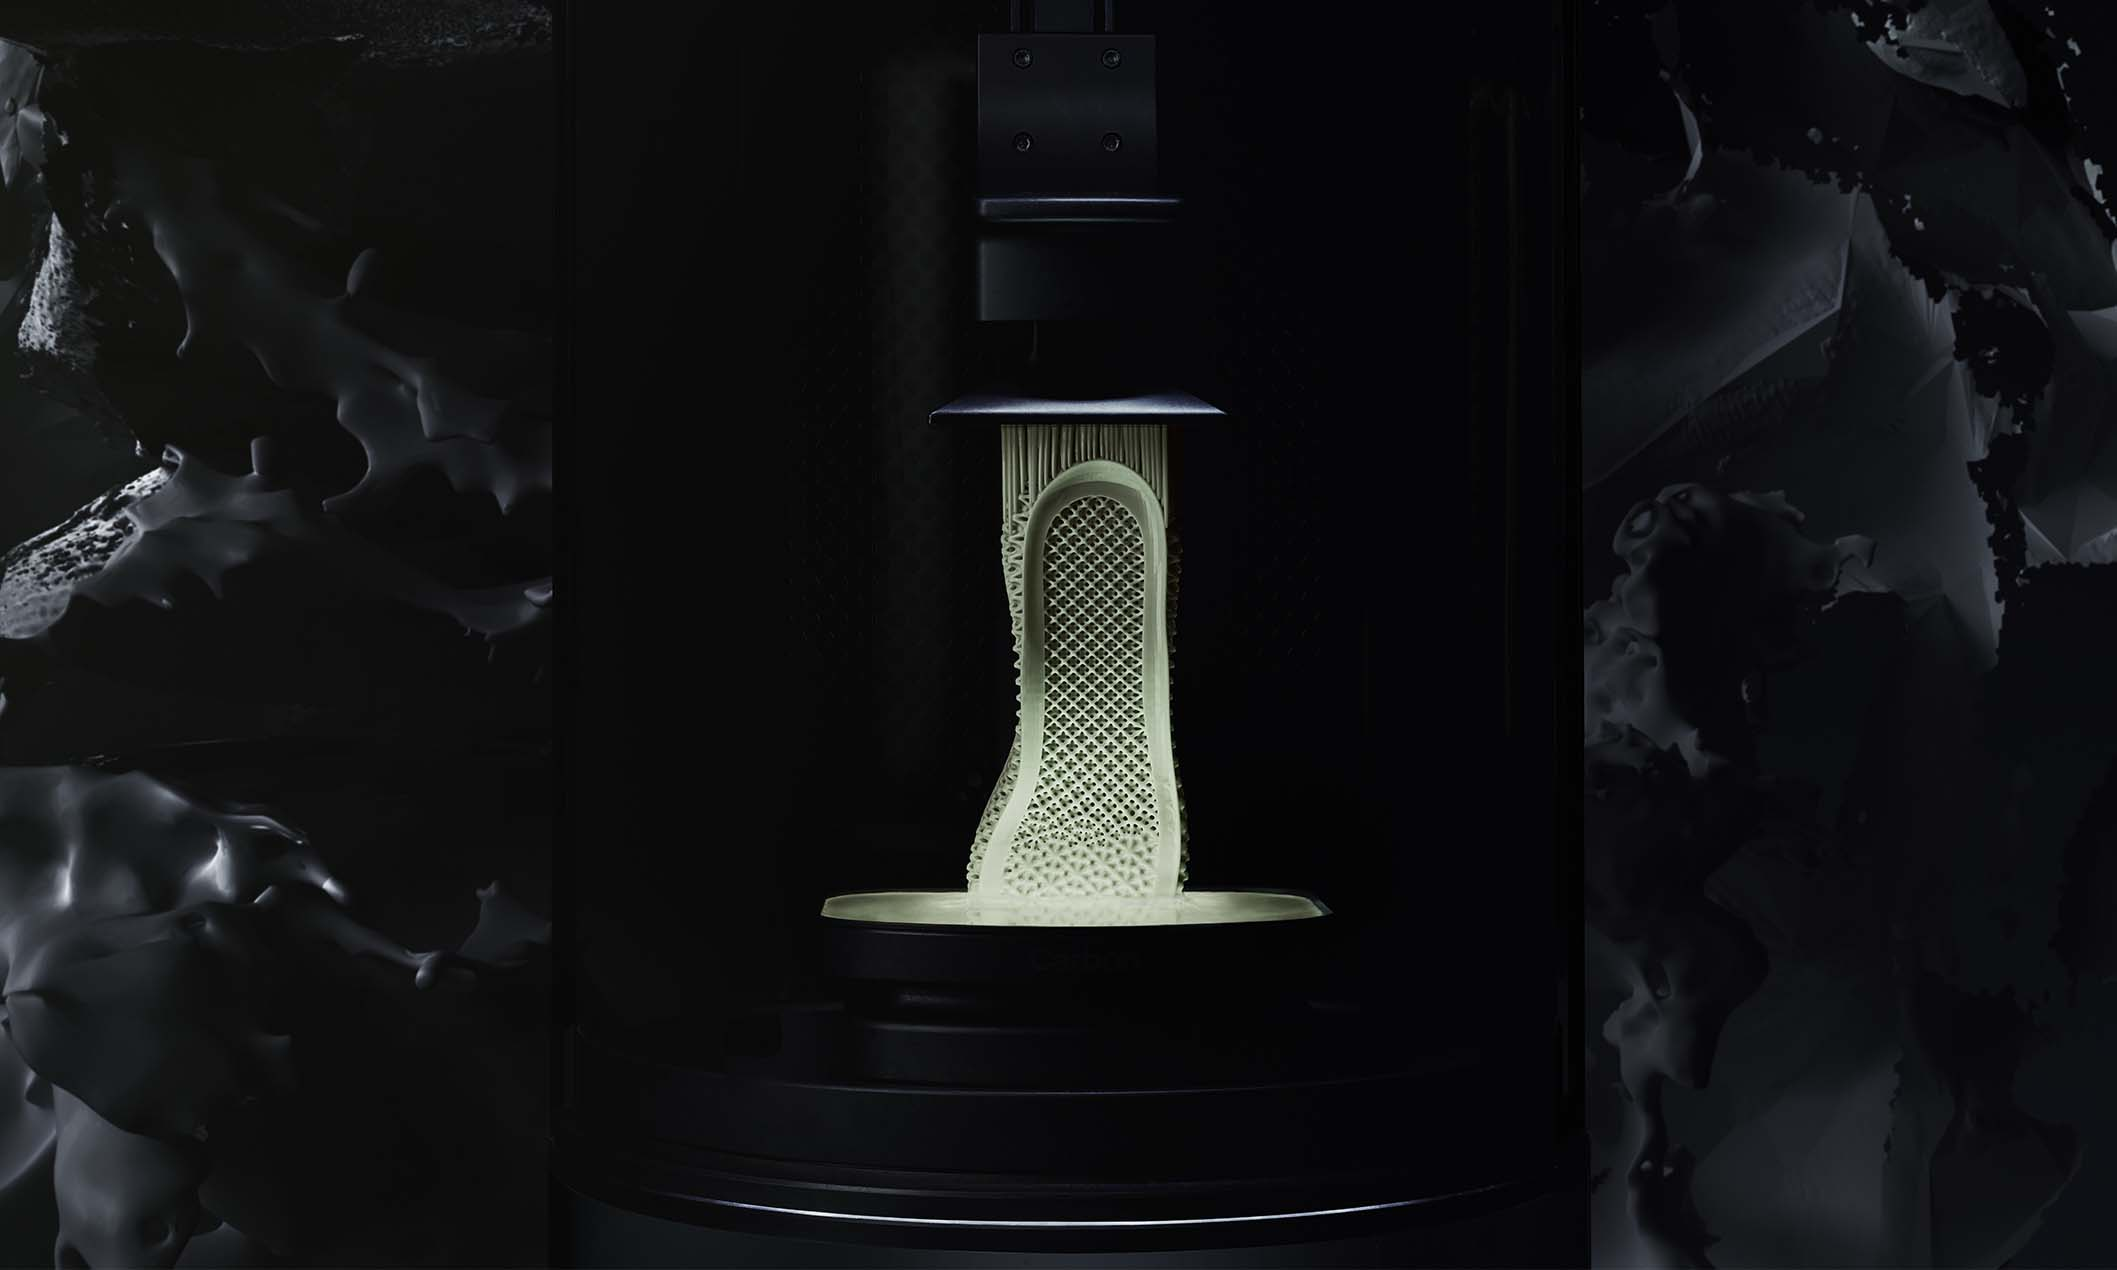 Carbon & adidas: Mass-Production with 3D Printing